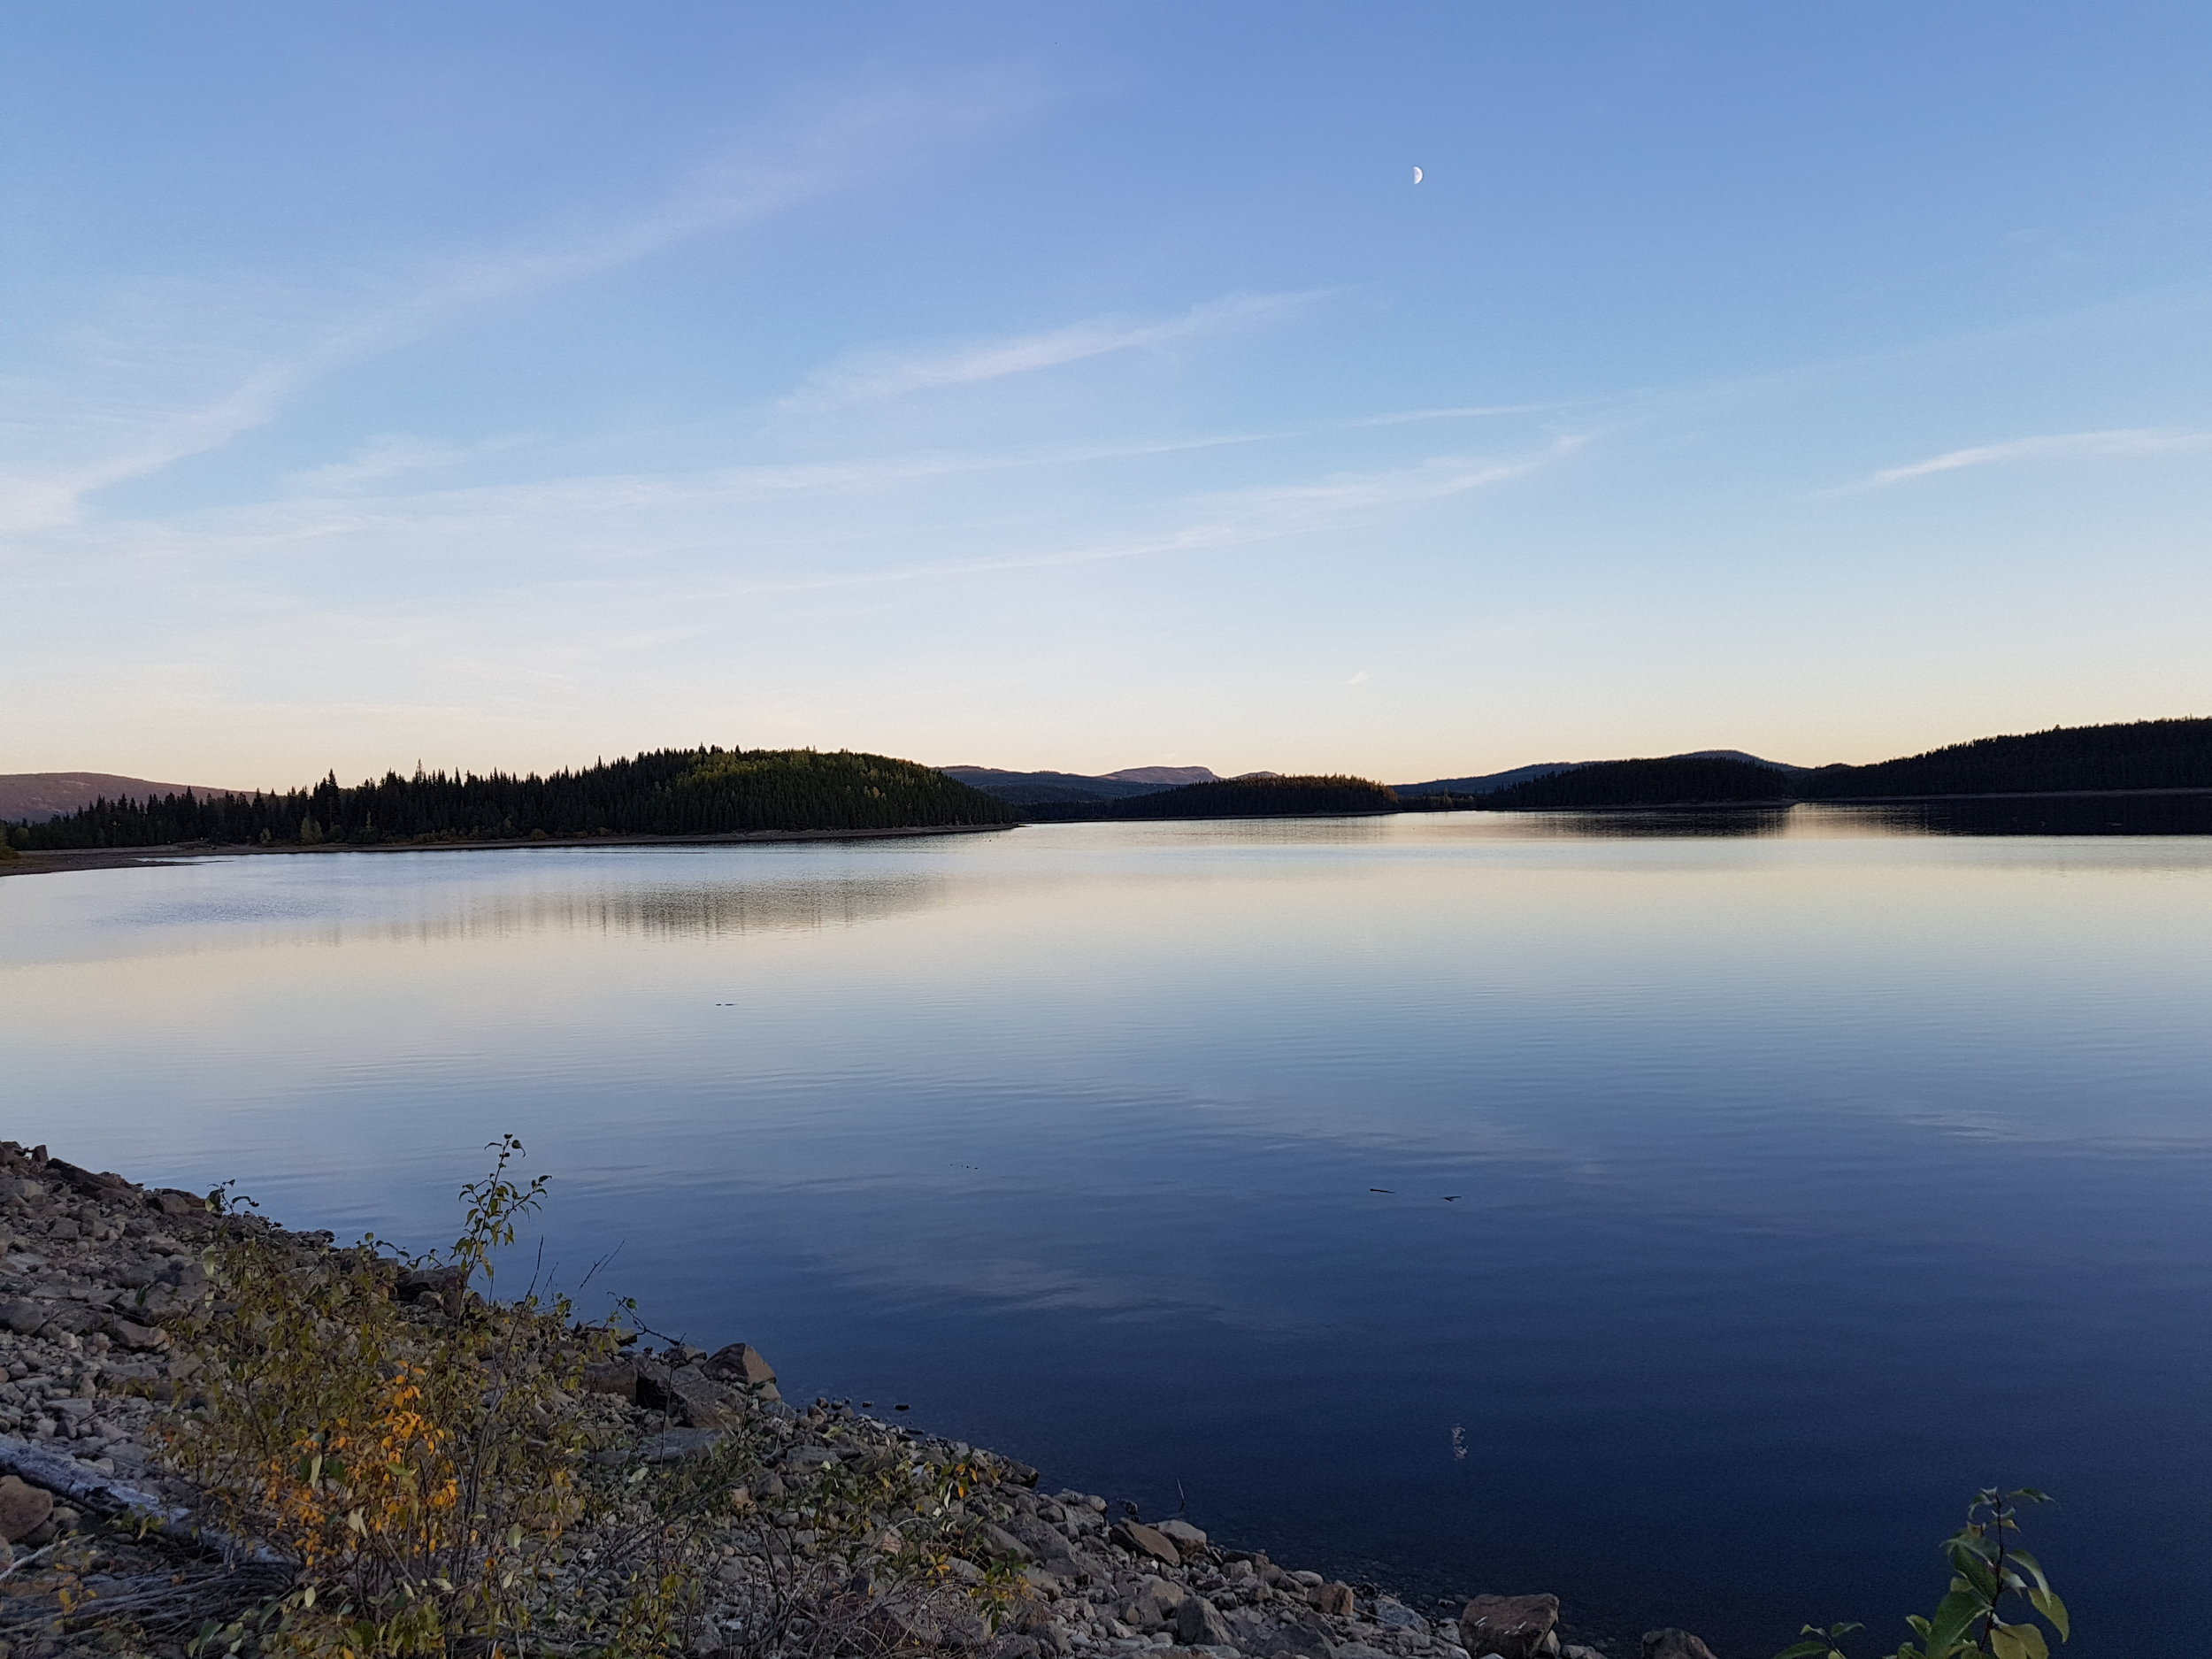 McCulloch Lake at sunset.